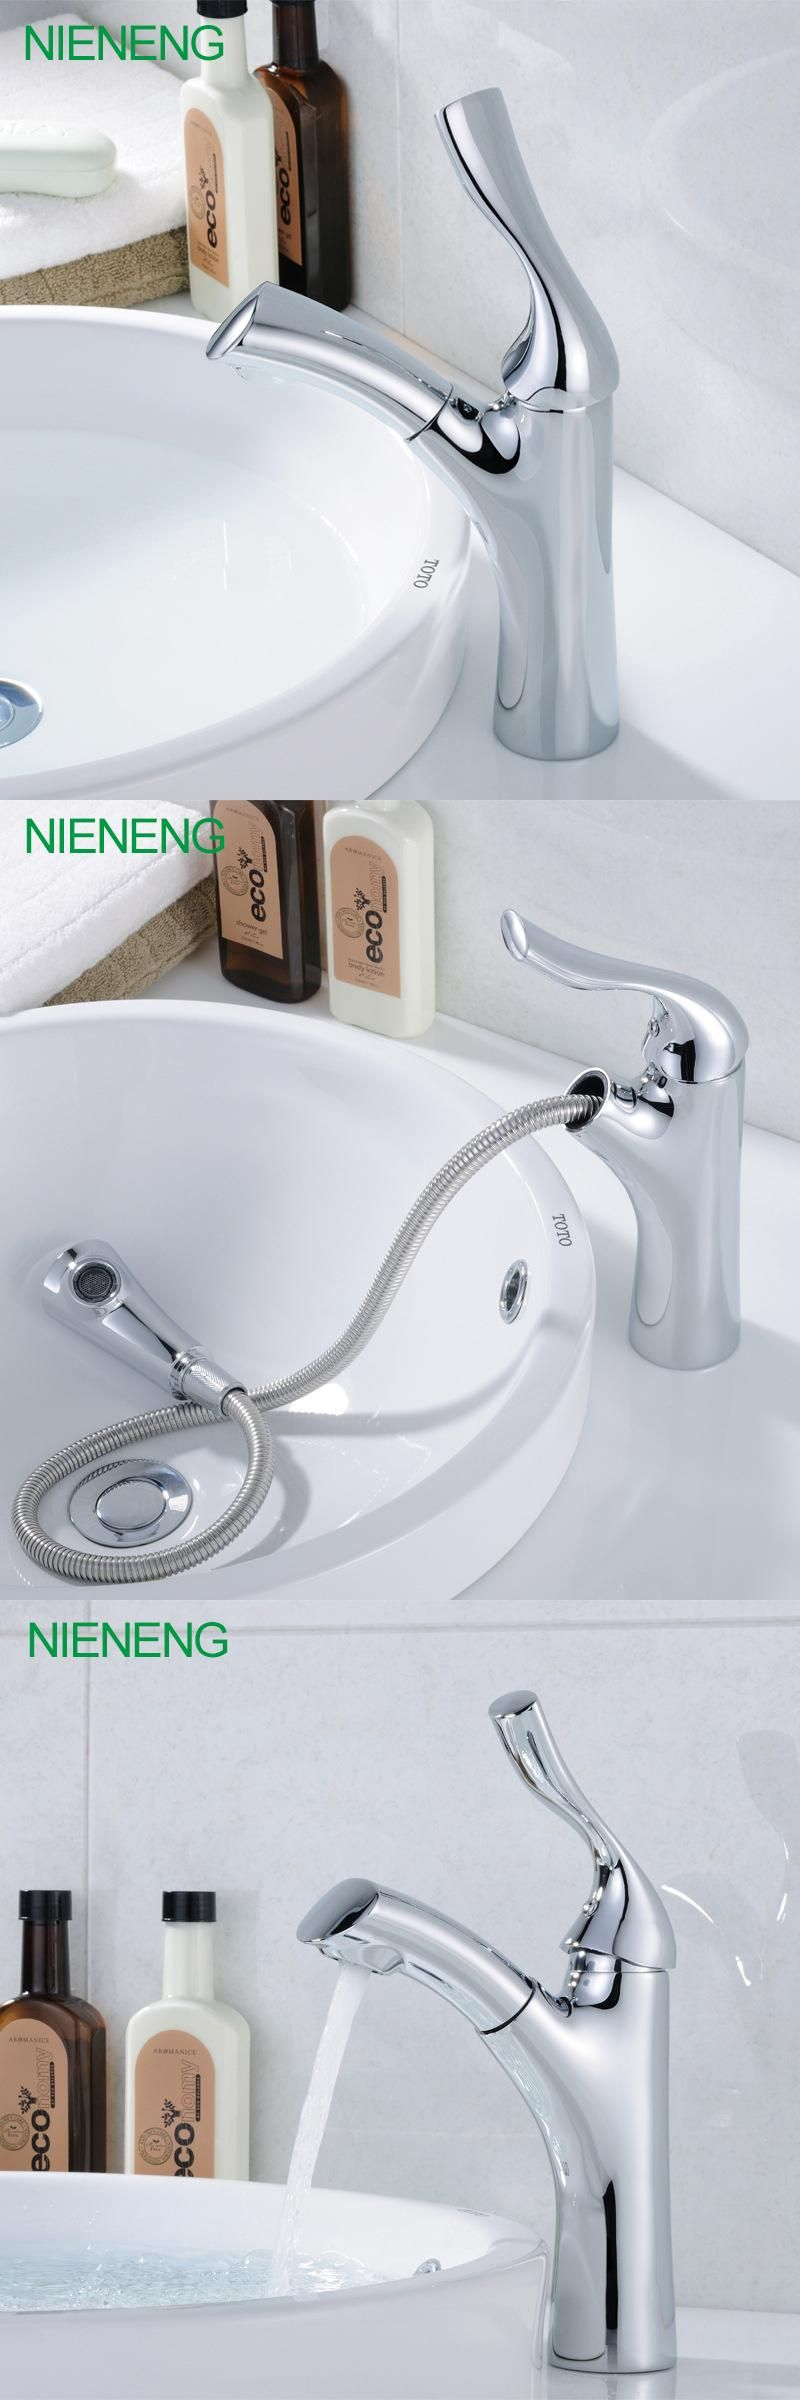 NIENENG bathroom faucet wash taps pull out sprayer mixer hot water ...